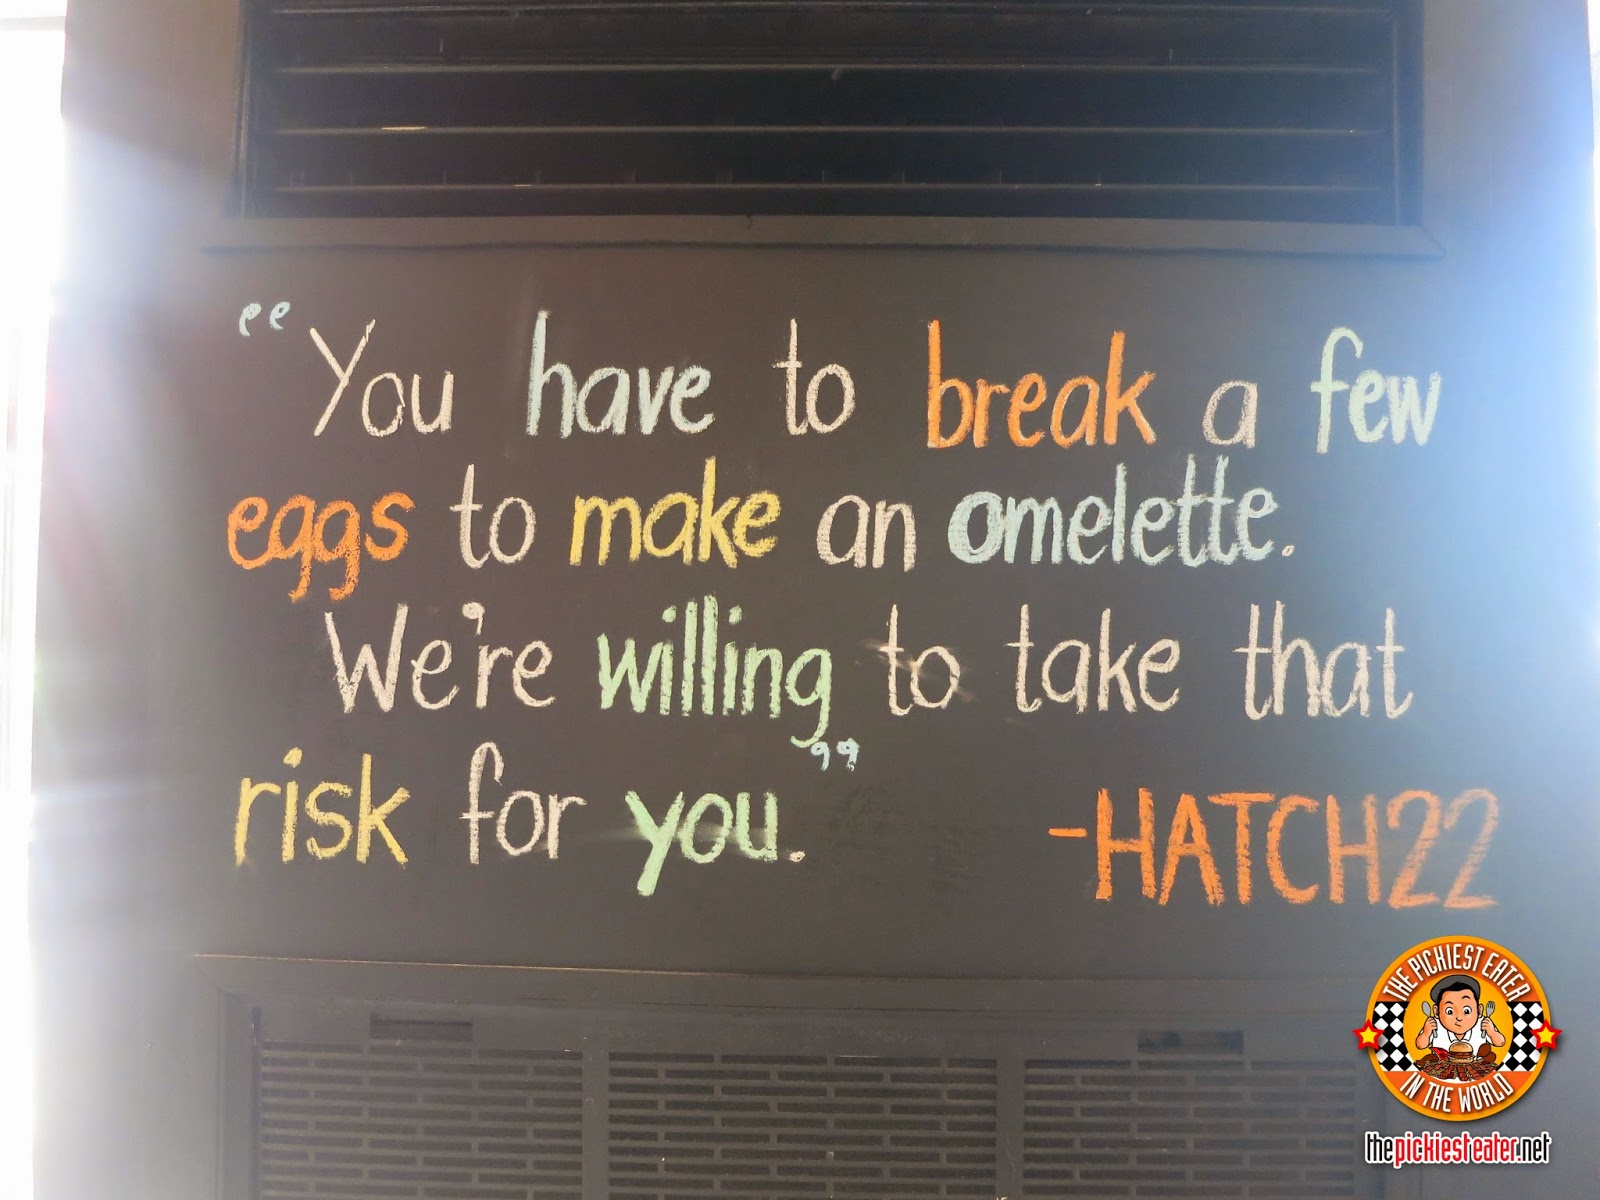 hatch 22 motto